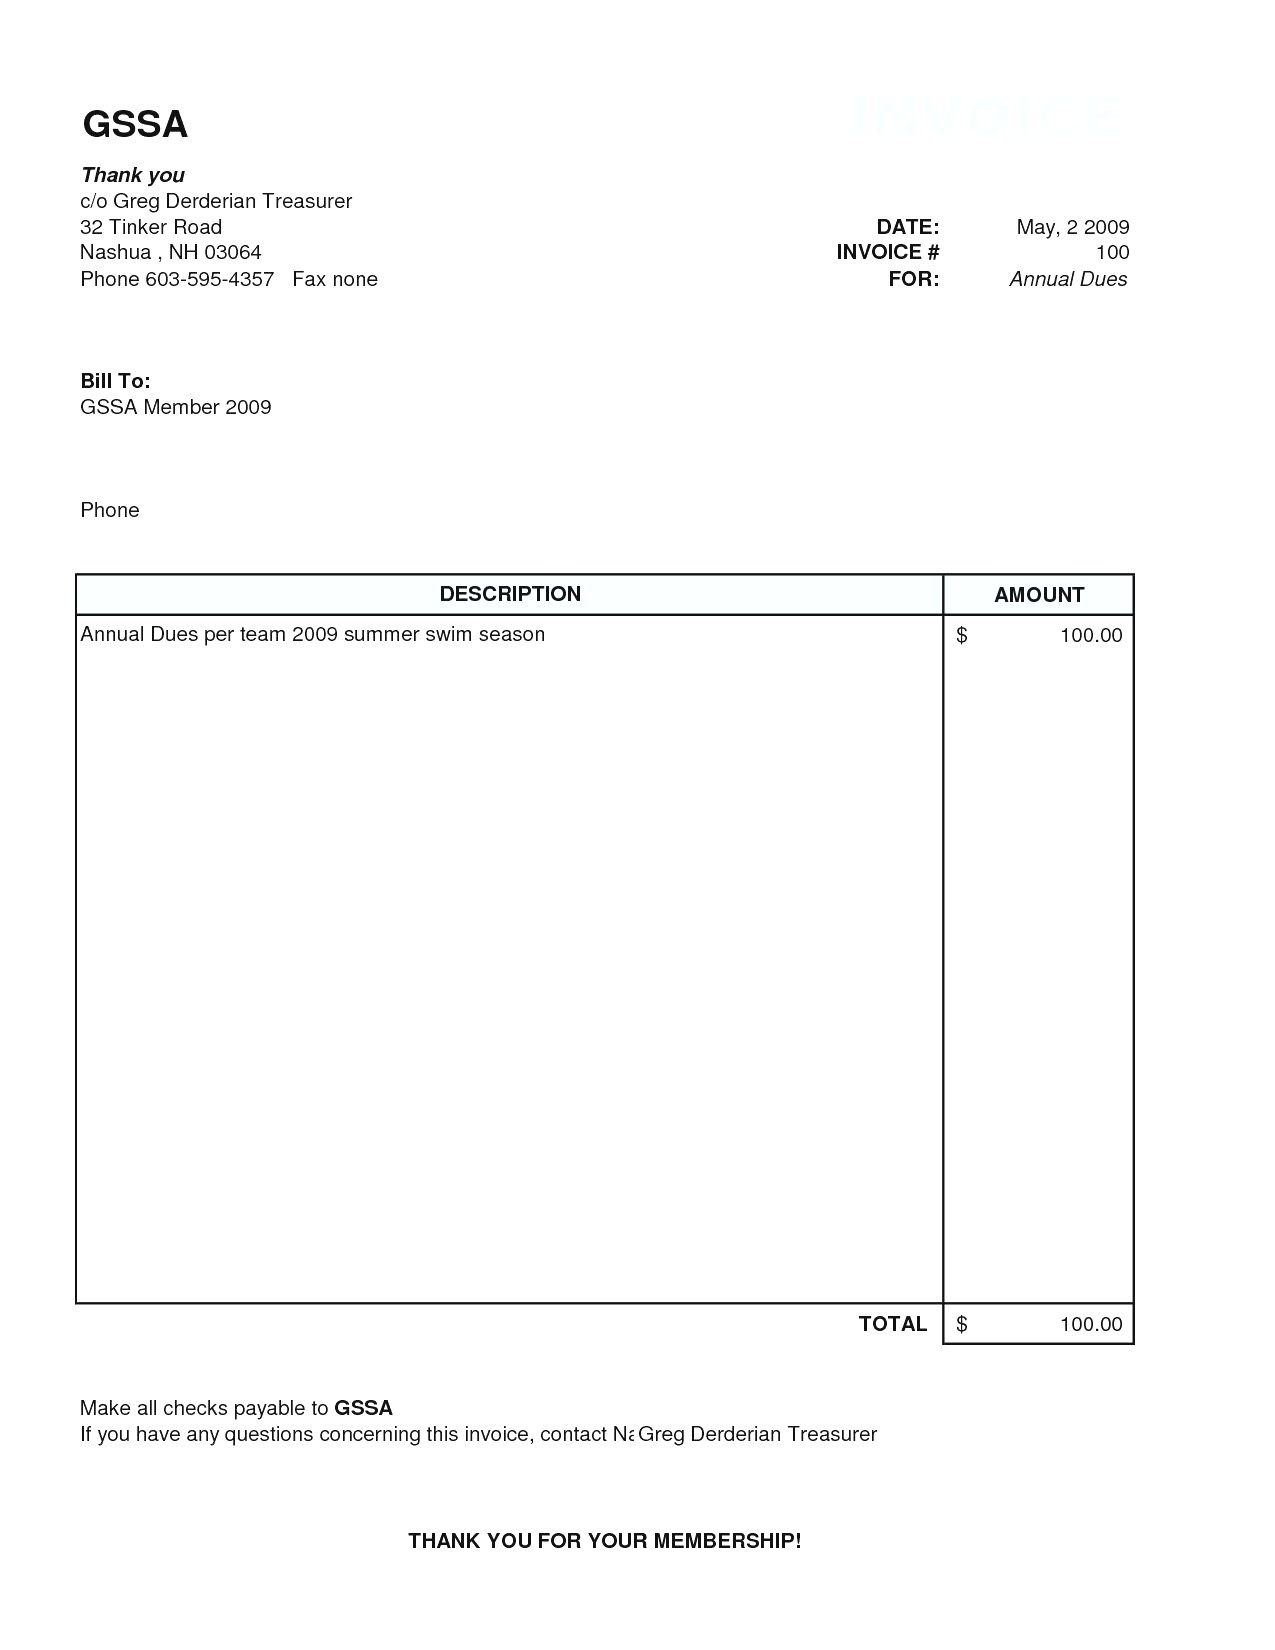 Sample Invoice Spreadsheet Regarding Simple Invoice Templates 0  Colorium Laboratorium